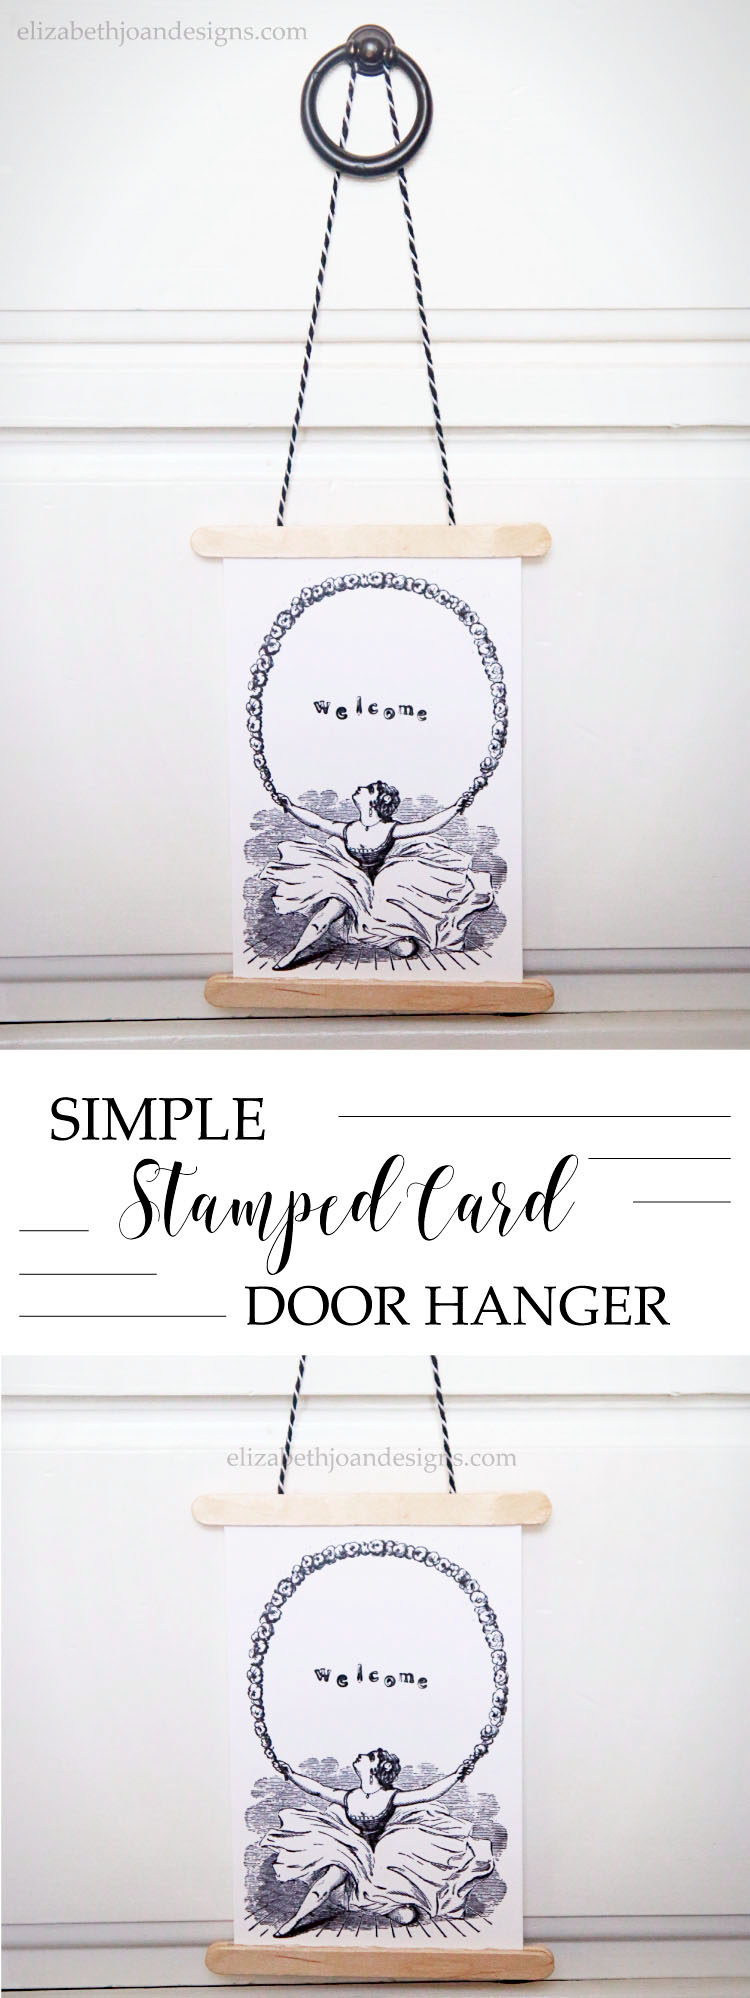 Simple Stamped Card Door Hanger